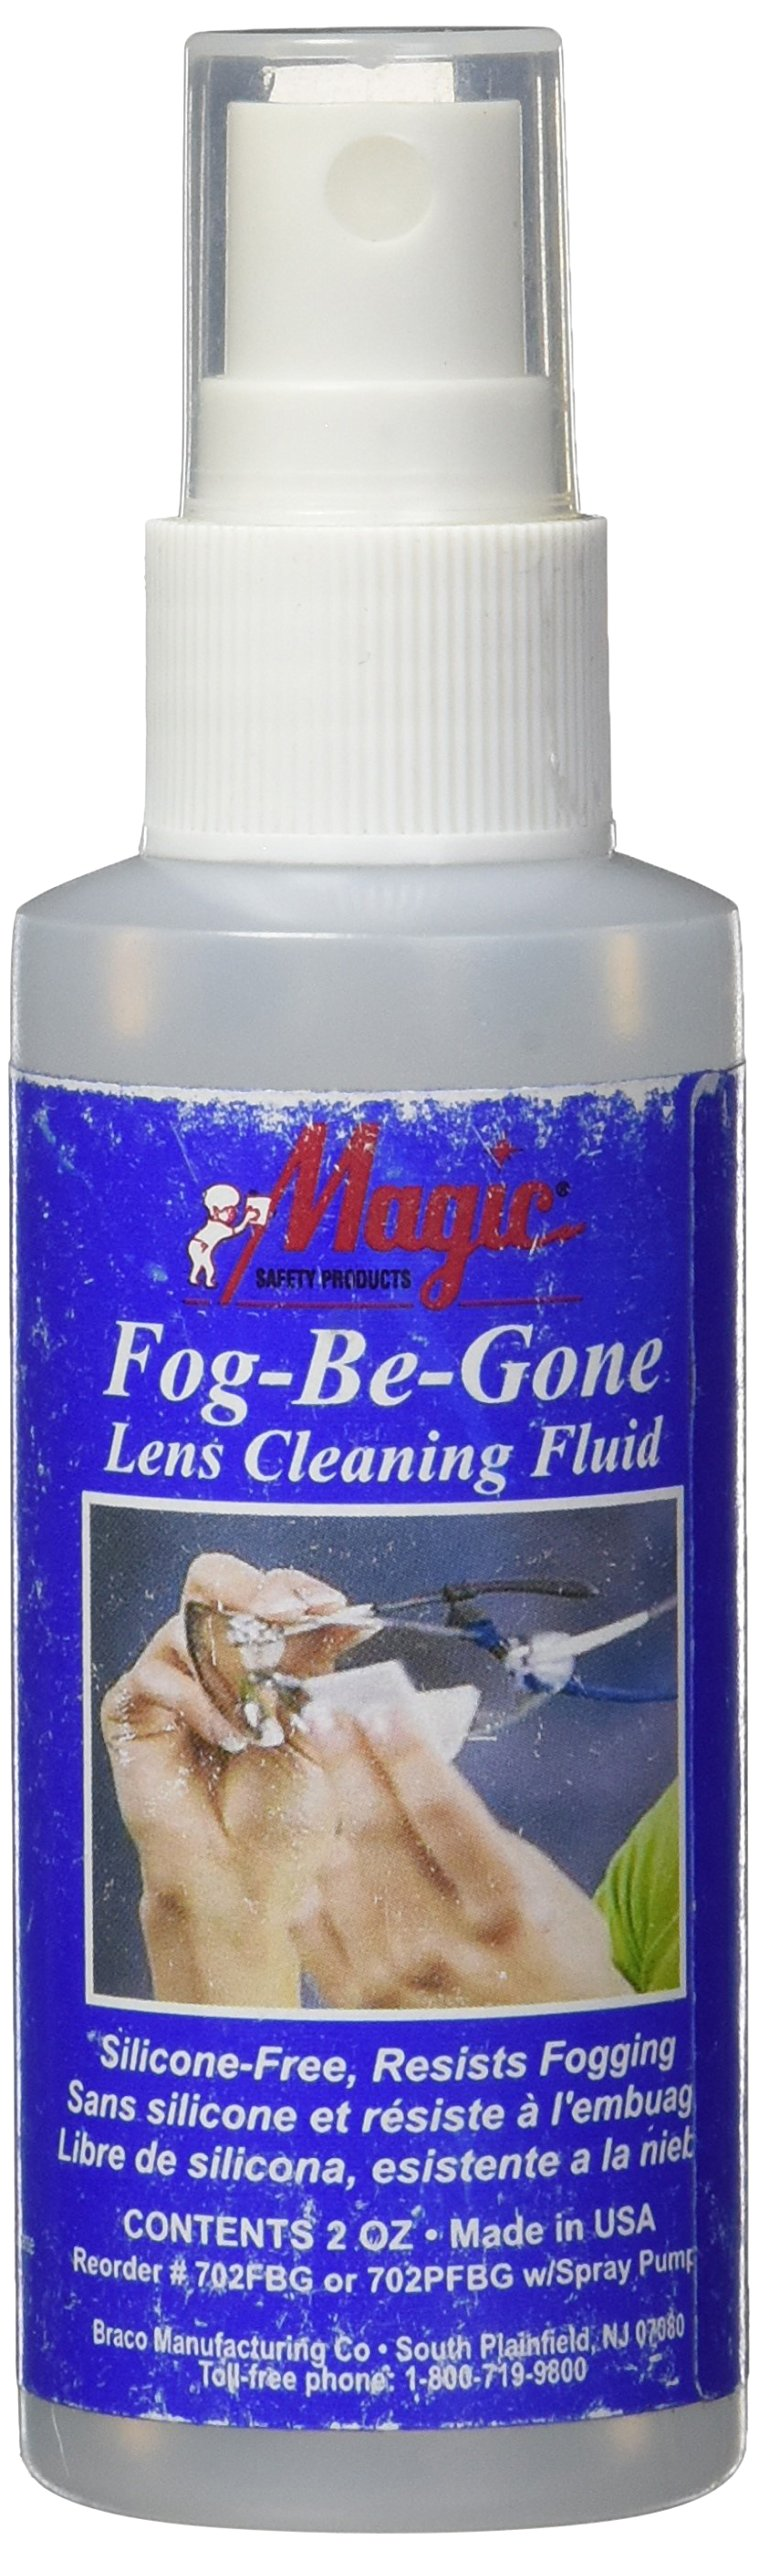 Magic Lens Cleaning Solutions, Fog-Be-Gone